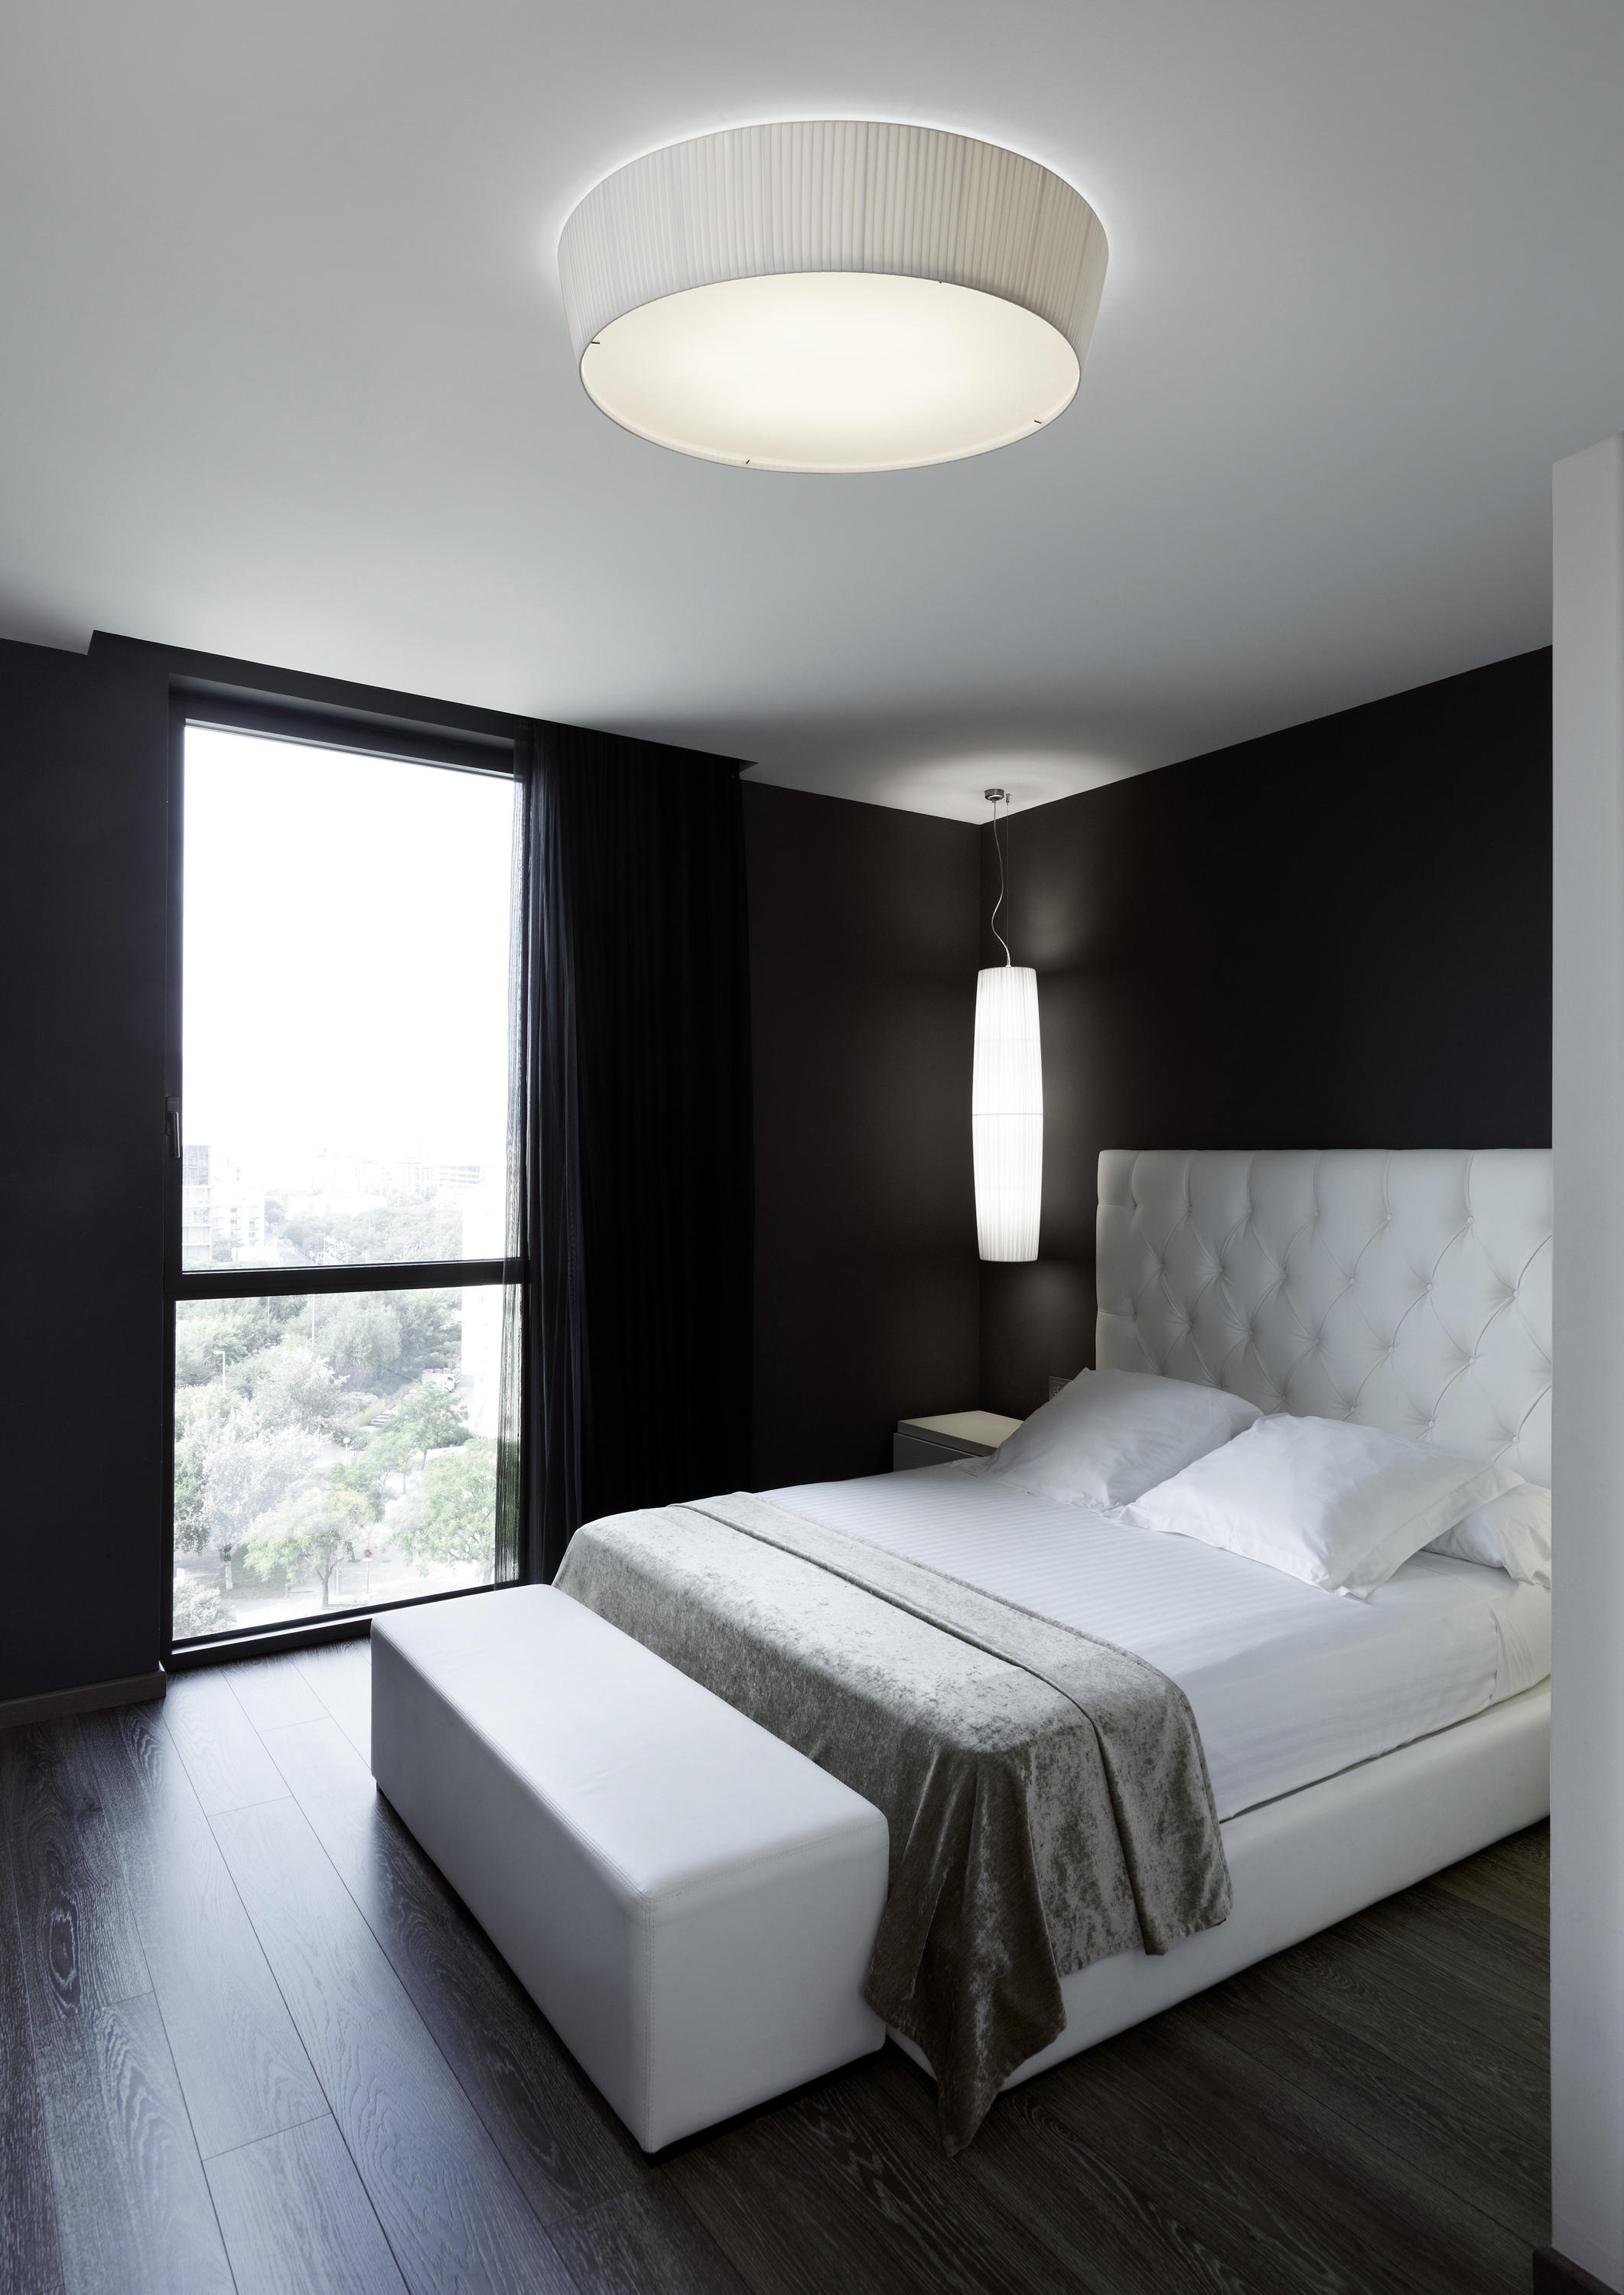 bover lighting. Plafonet 03 Ceiling Light By BOVER | General Lighting Bover